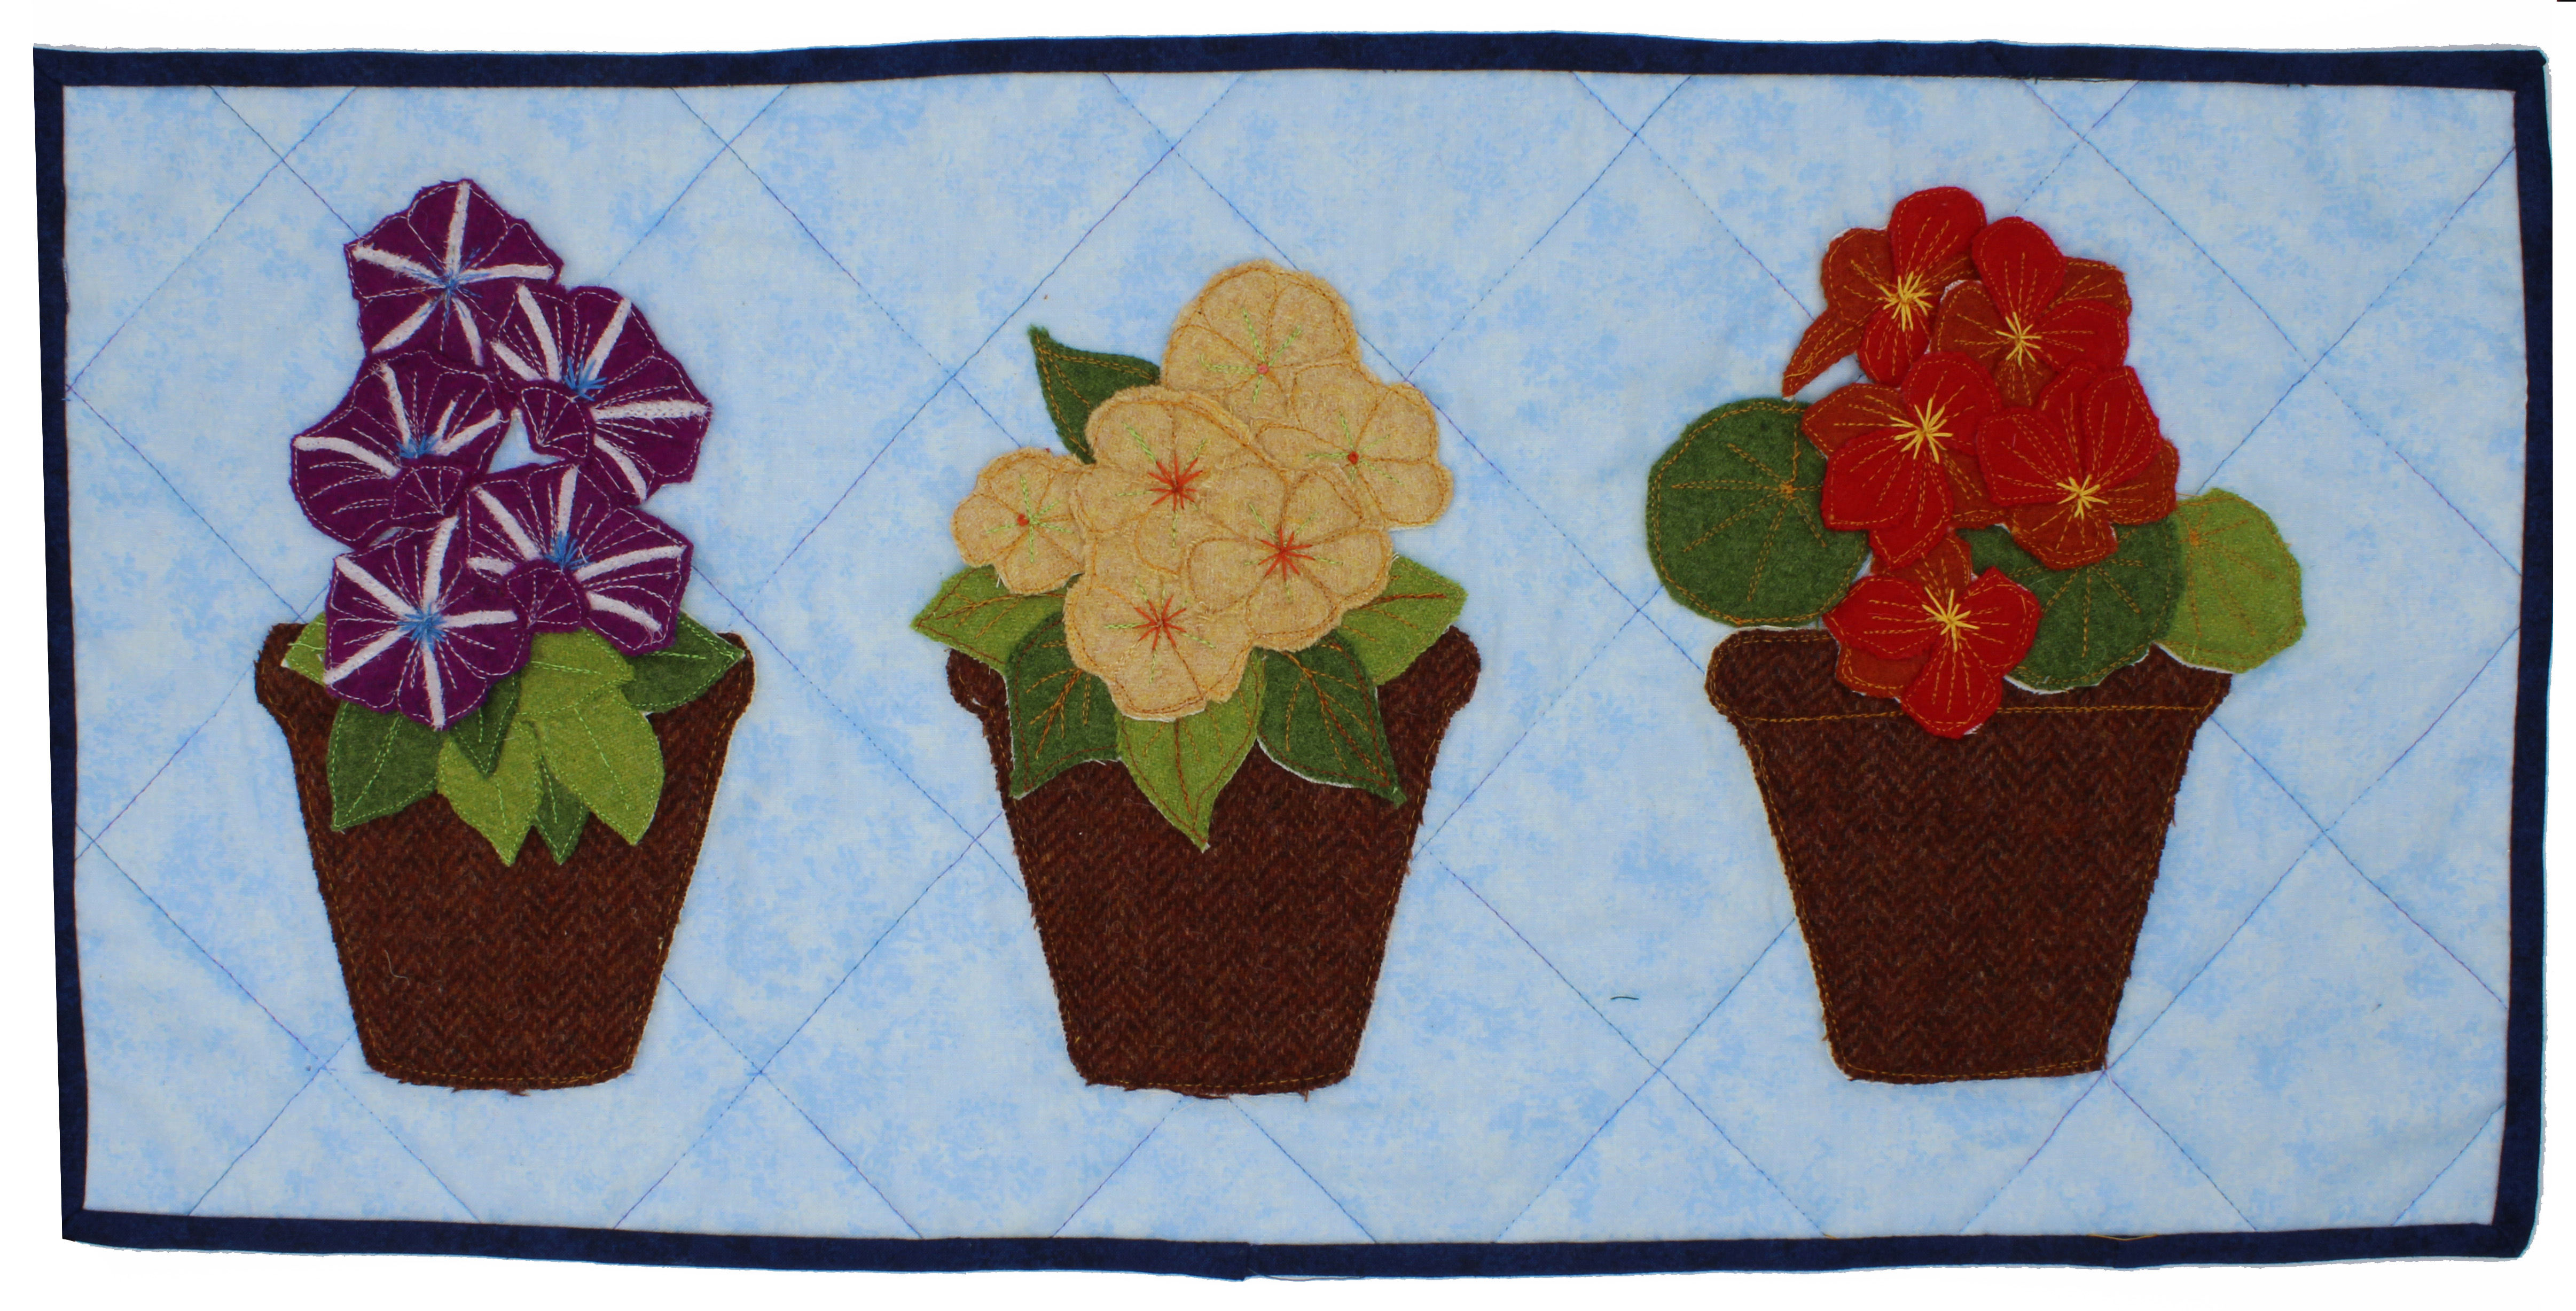 Pots of Love, Wall Hanging Sewing Pattern